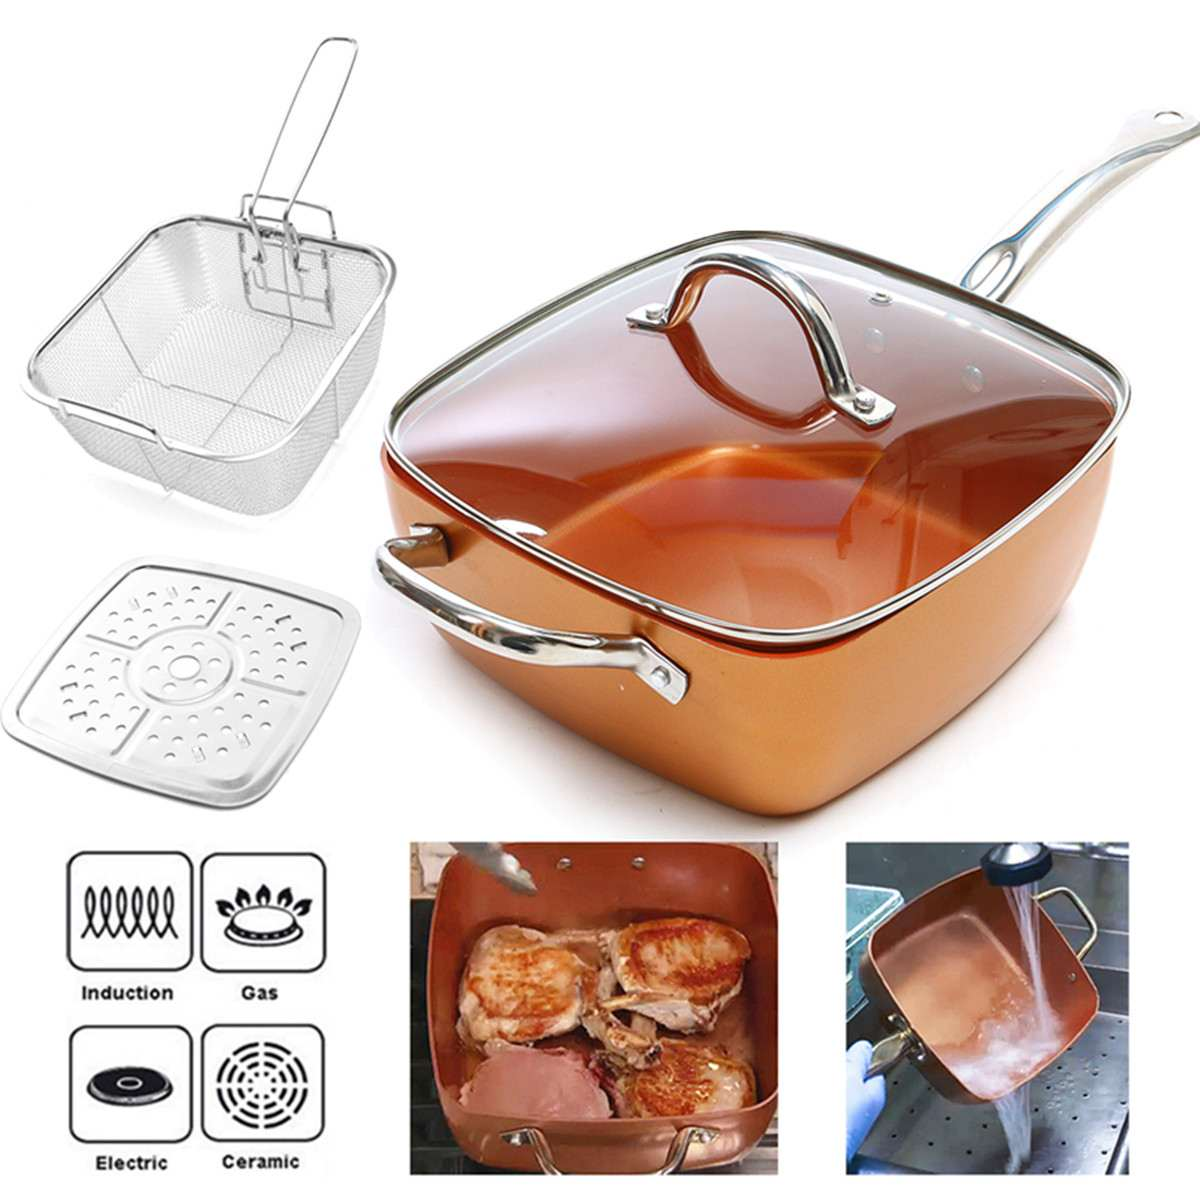 Ceramic Non-Stick Pan Copper Square Pan Induction Chef Glass Lid Fry Basket Steam Rack 4 Piece Set 9.5 Inches Used In Induction